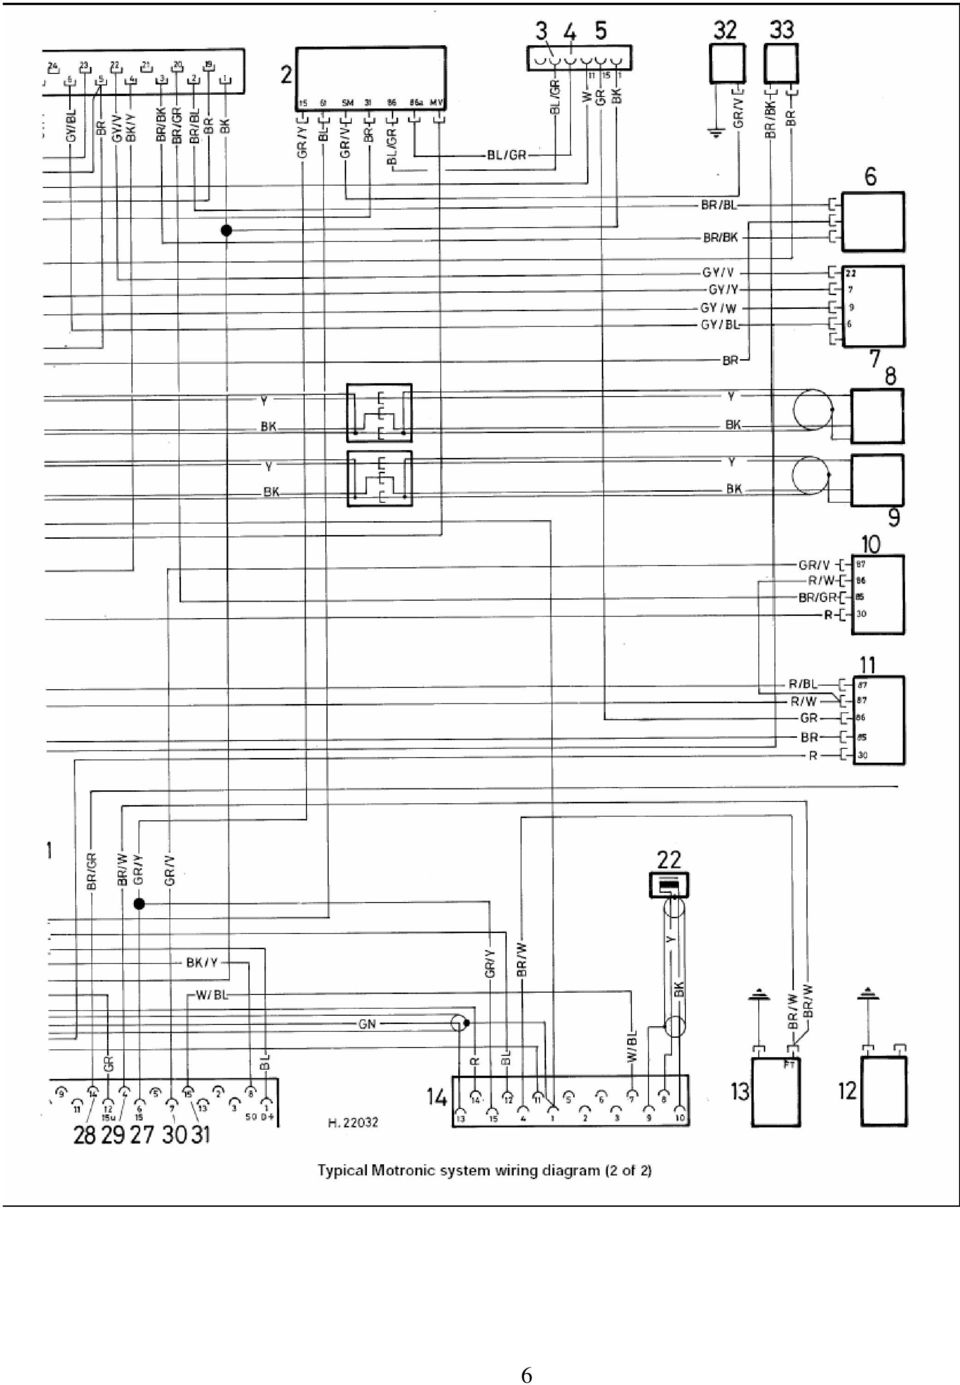 Colour Codes Diagrams Index Pdf Ge Motor Wiring Diagram In Addition General Electric 7 Key To Motronic Engine Control System Picture 1 2 Electronic Unit Ecu 18 Distributor Speed Relay 19